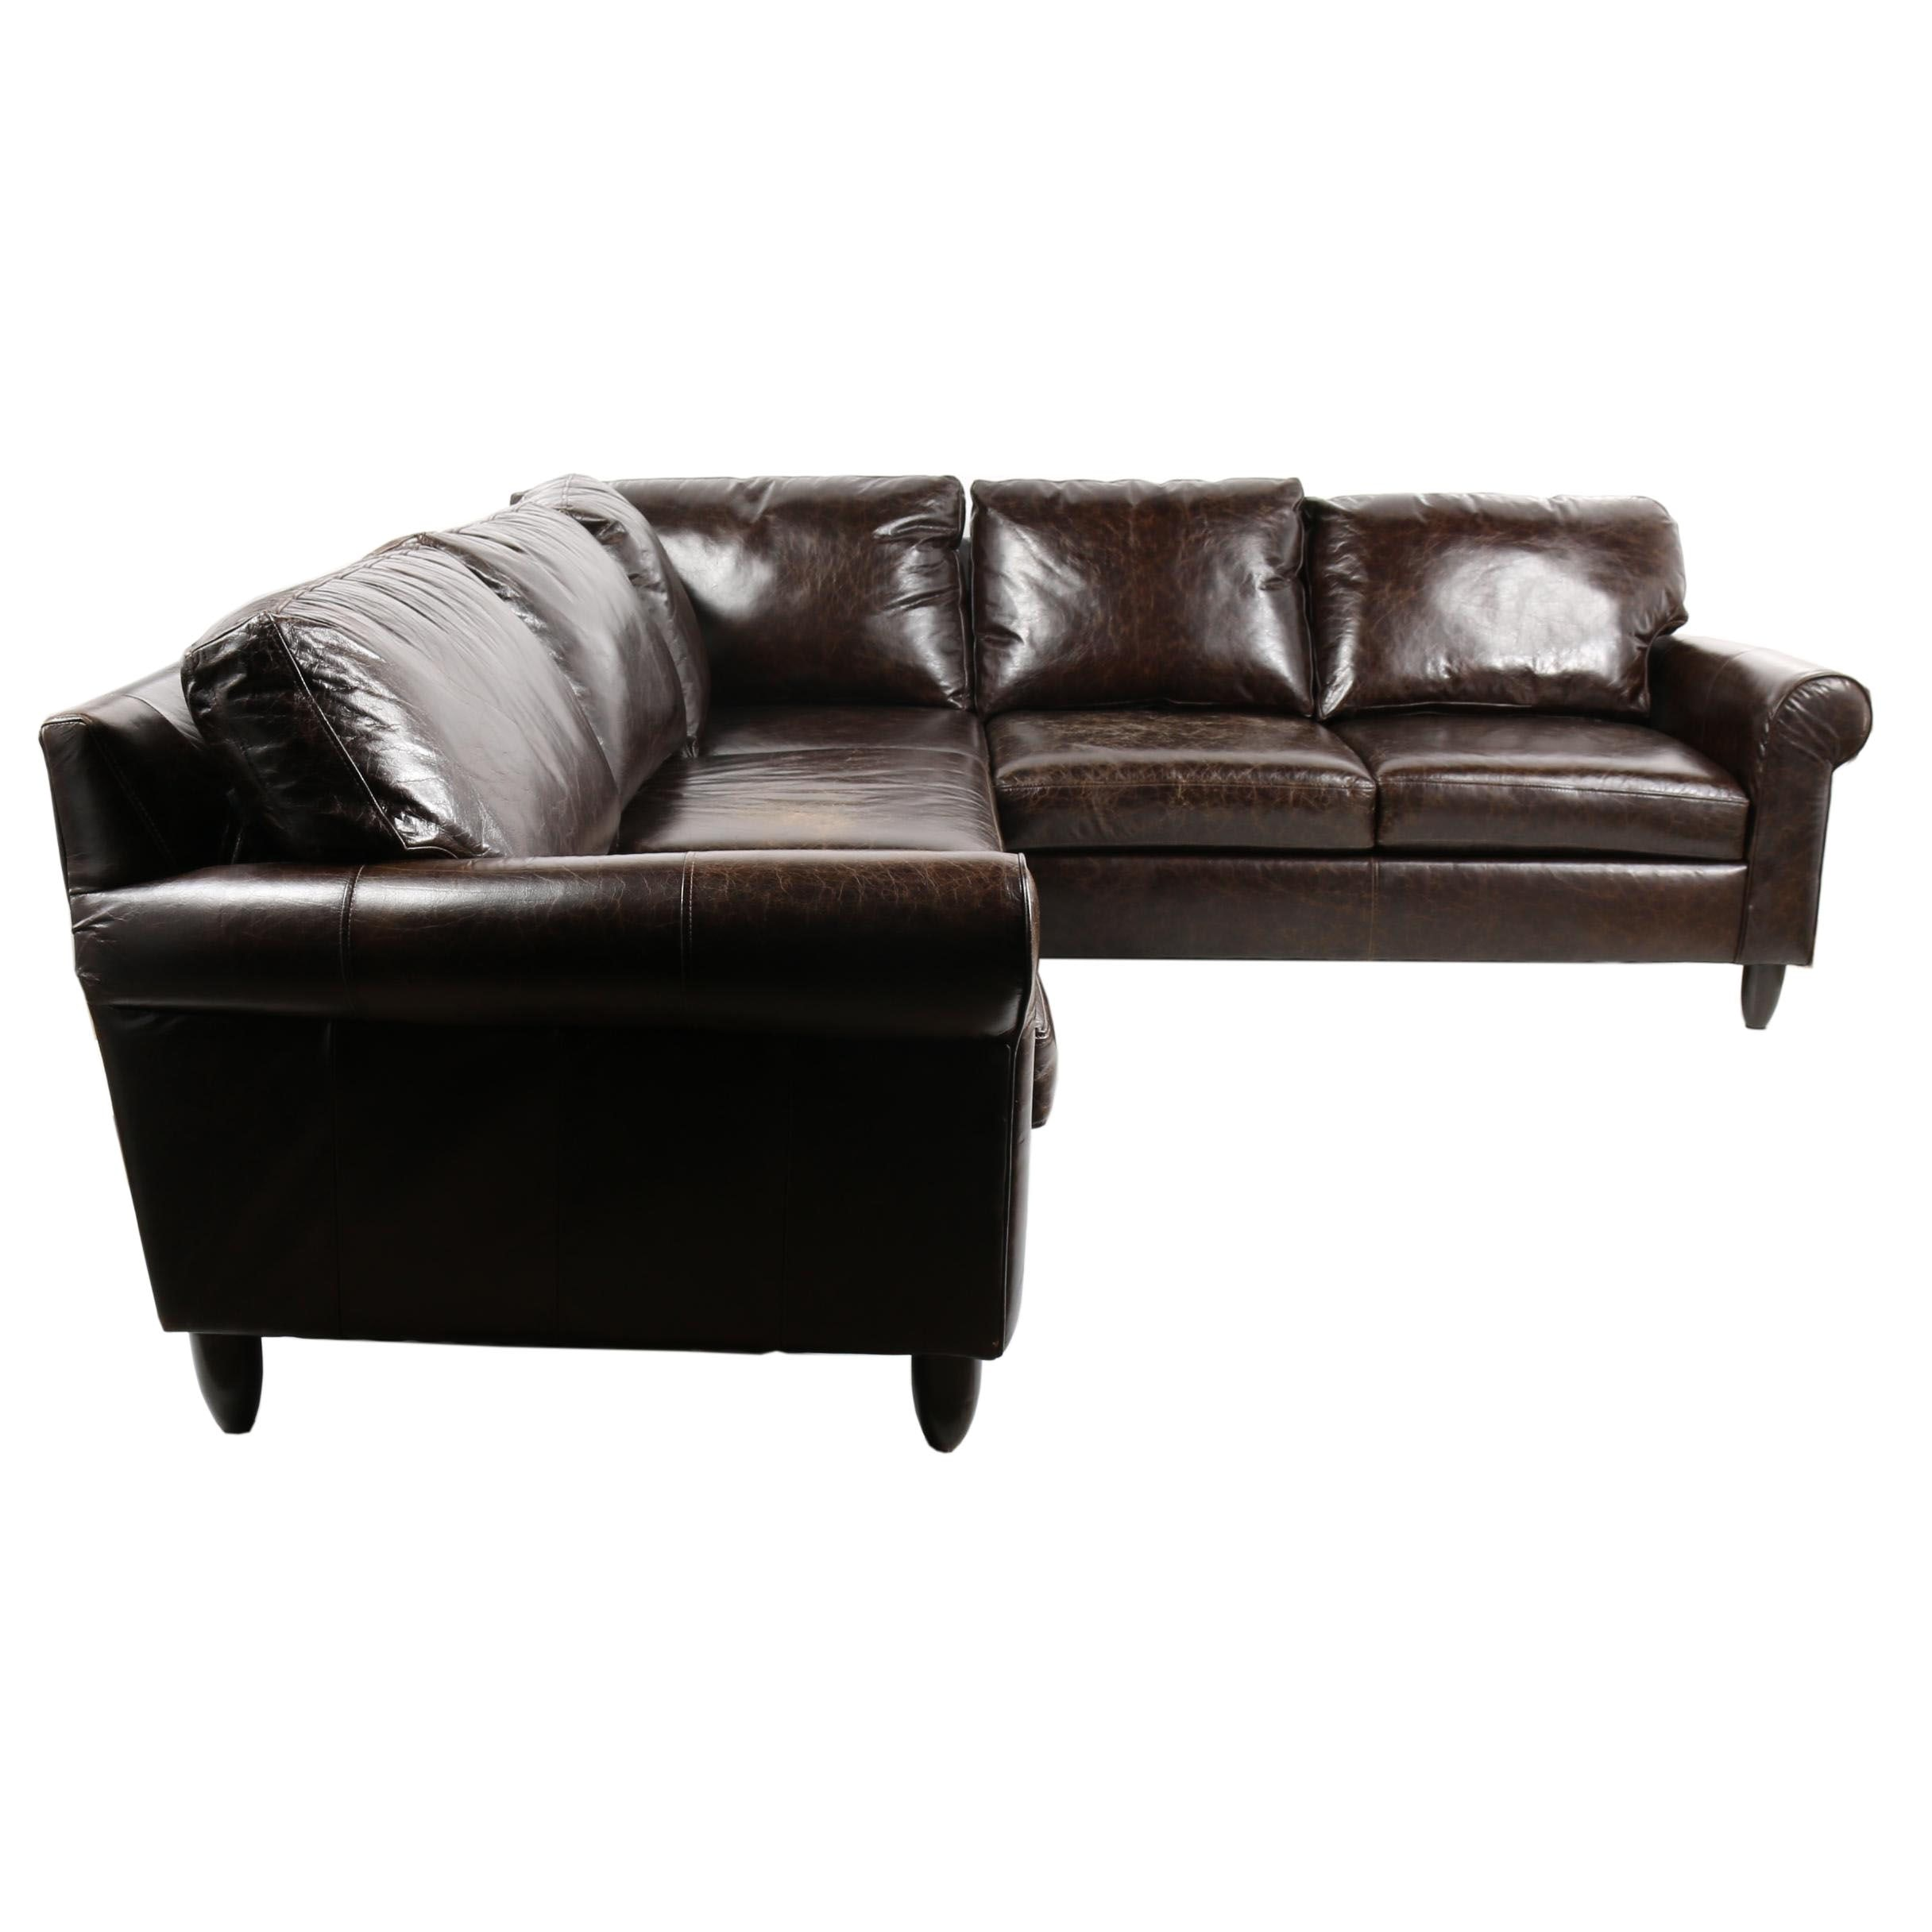 Leather Sectional Sofa by Haverty's, 21st Century